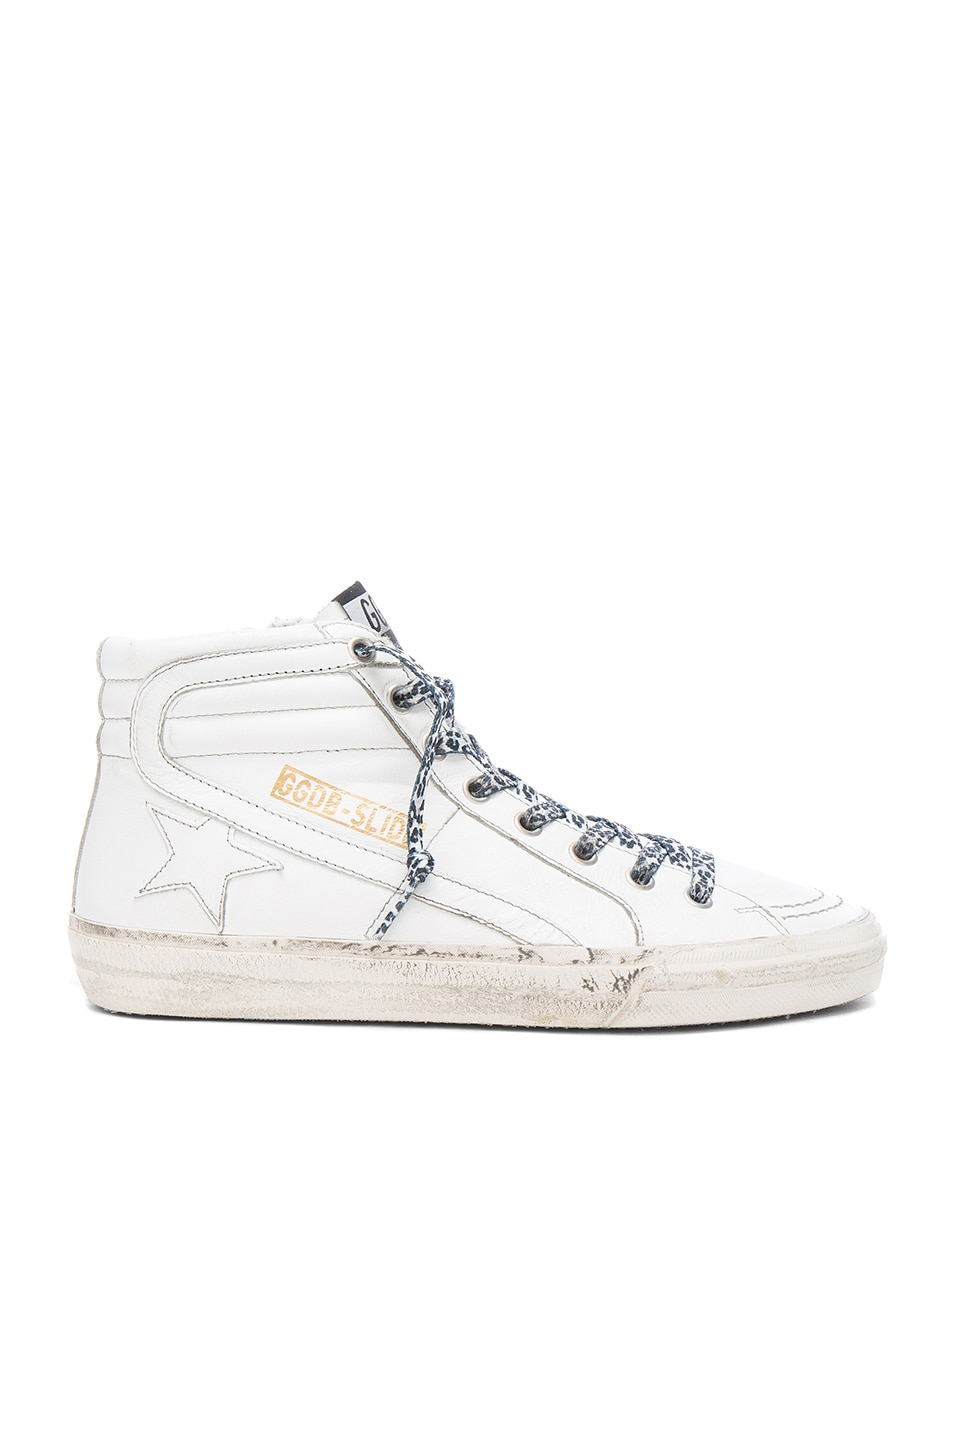 Image 1 of Golden Goose Leather Slide Sneakers in White & Grey